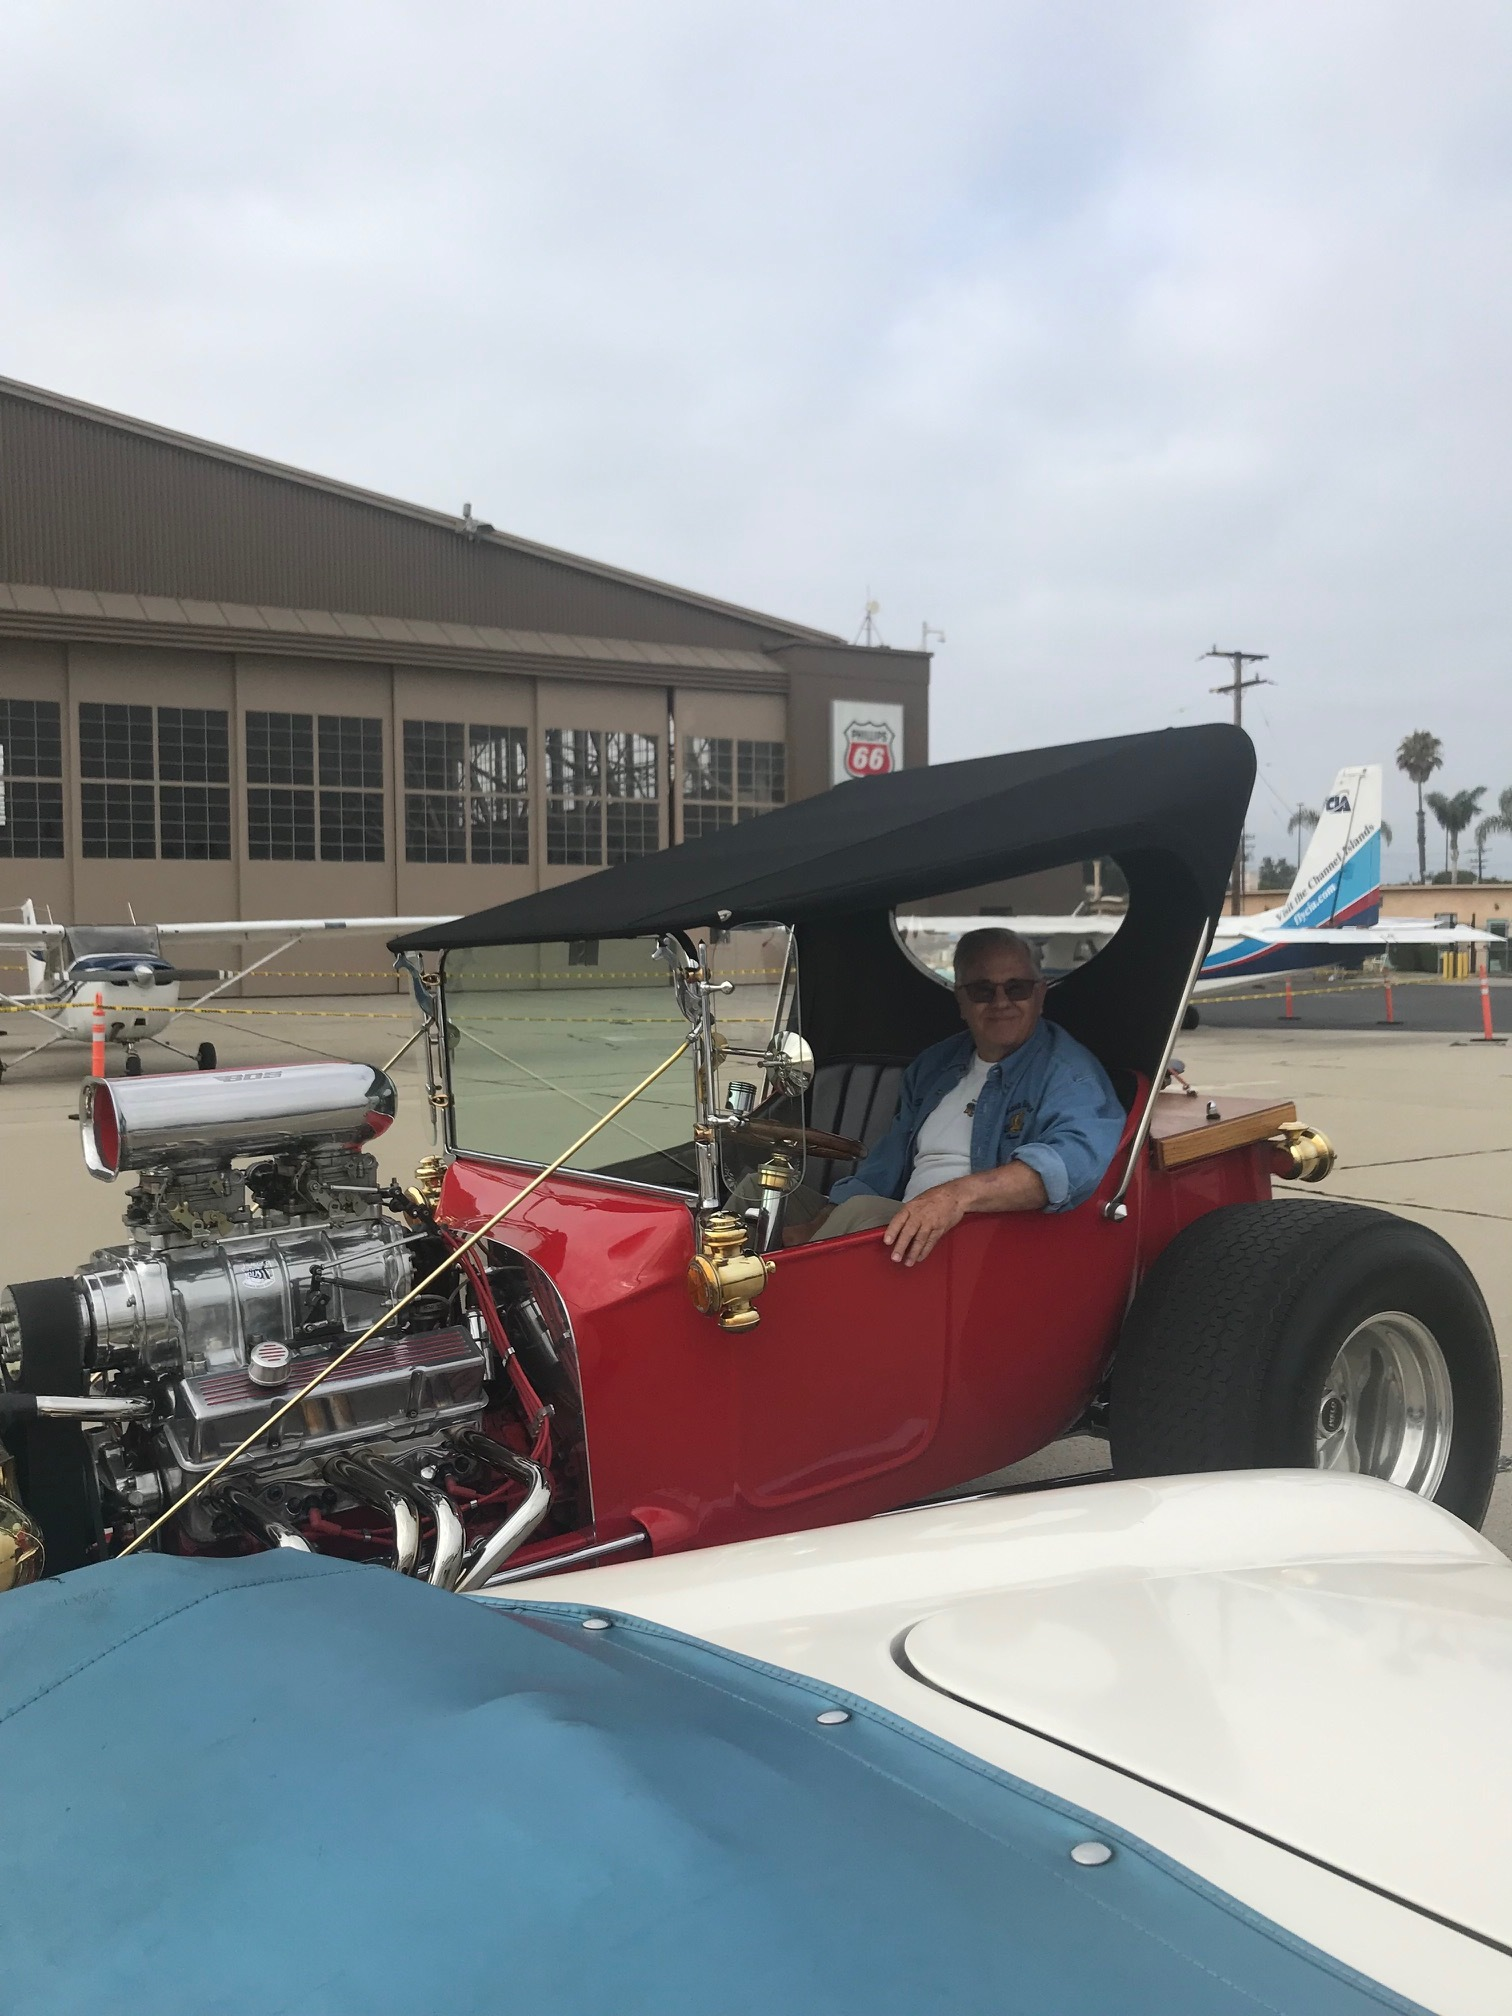 Camarillo Air show 2019 -